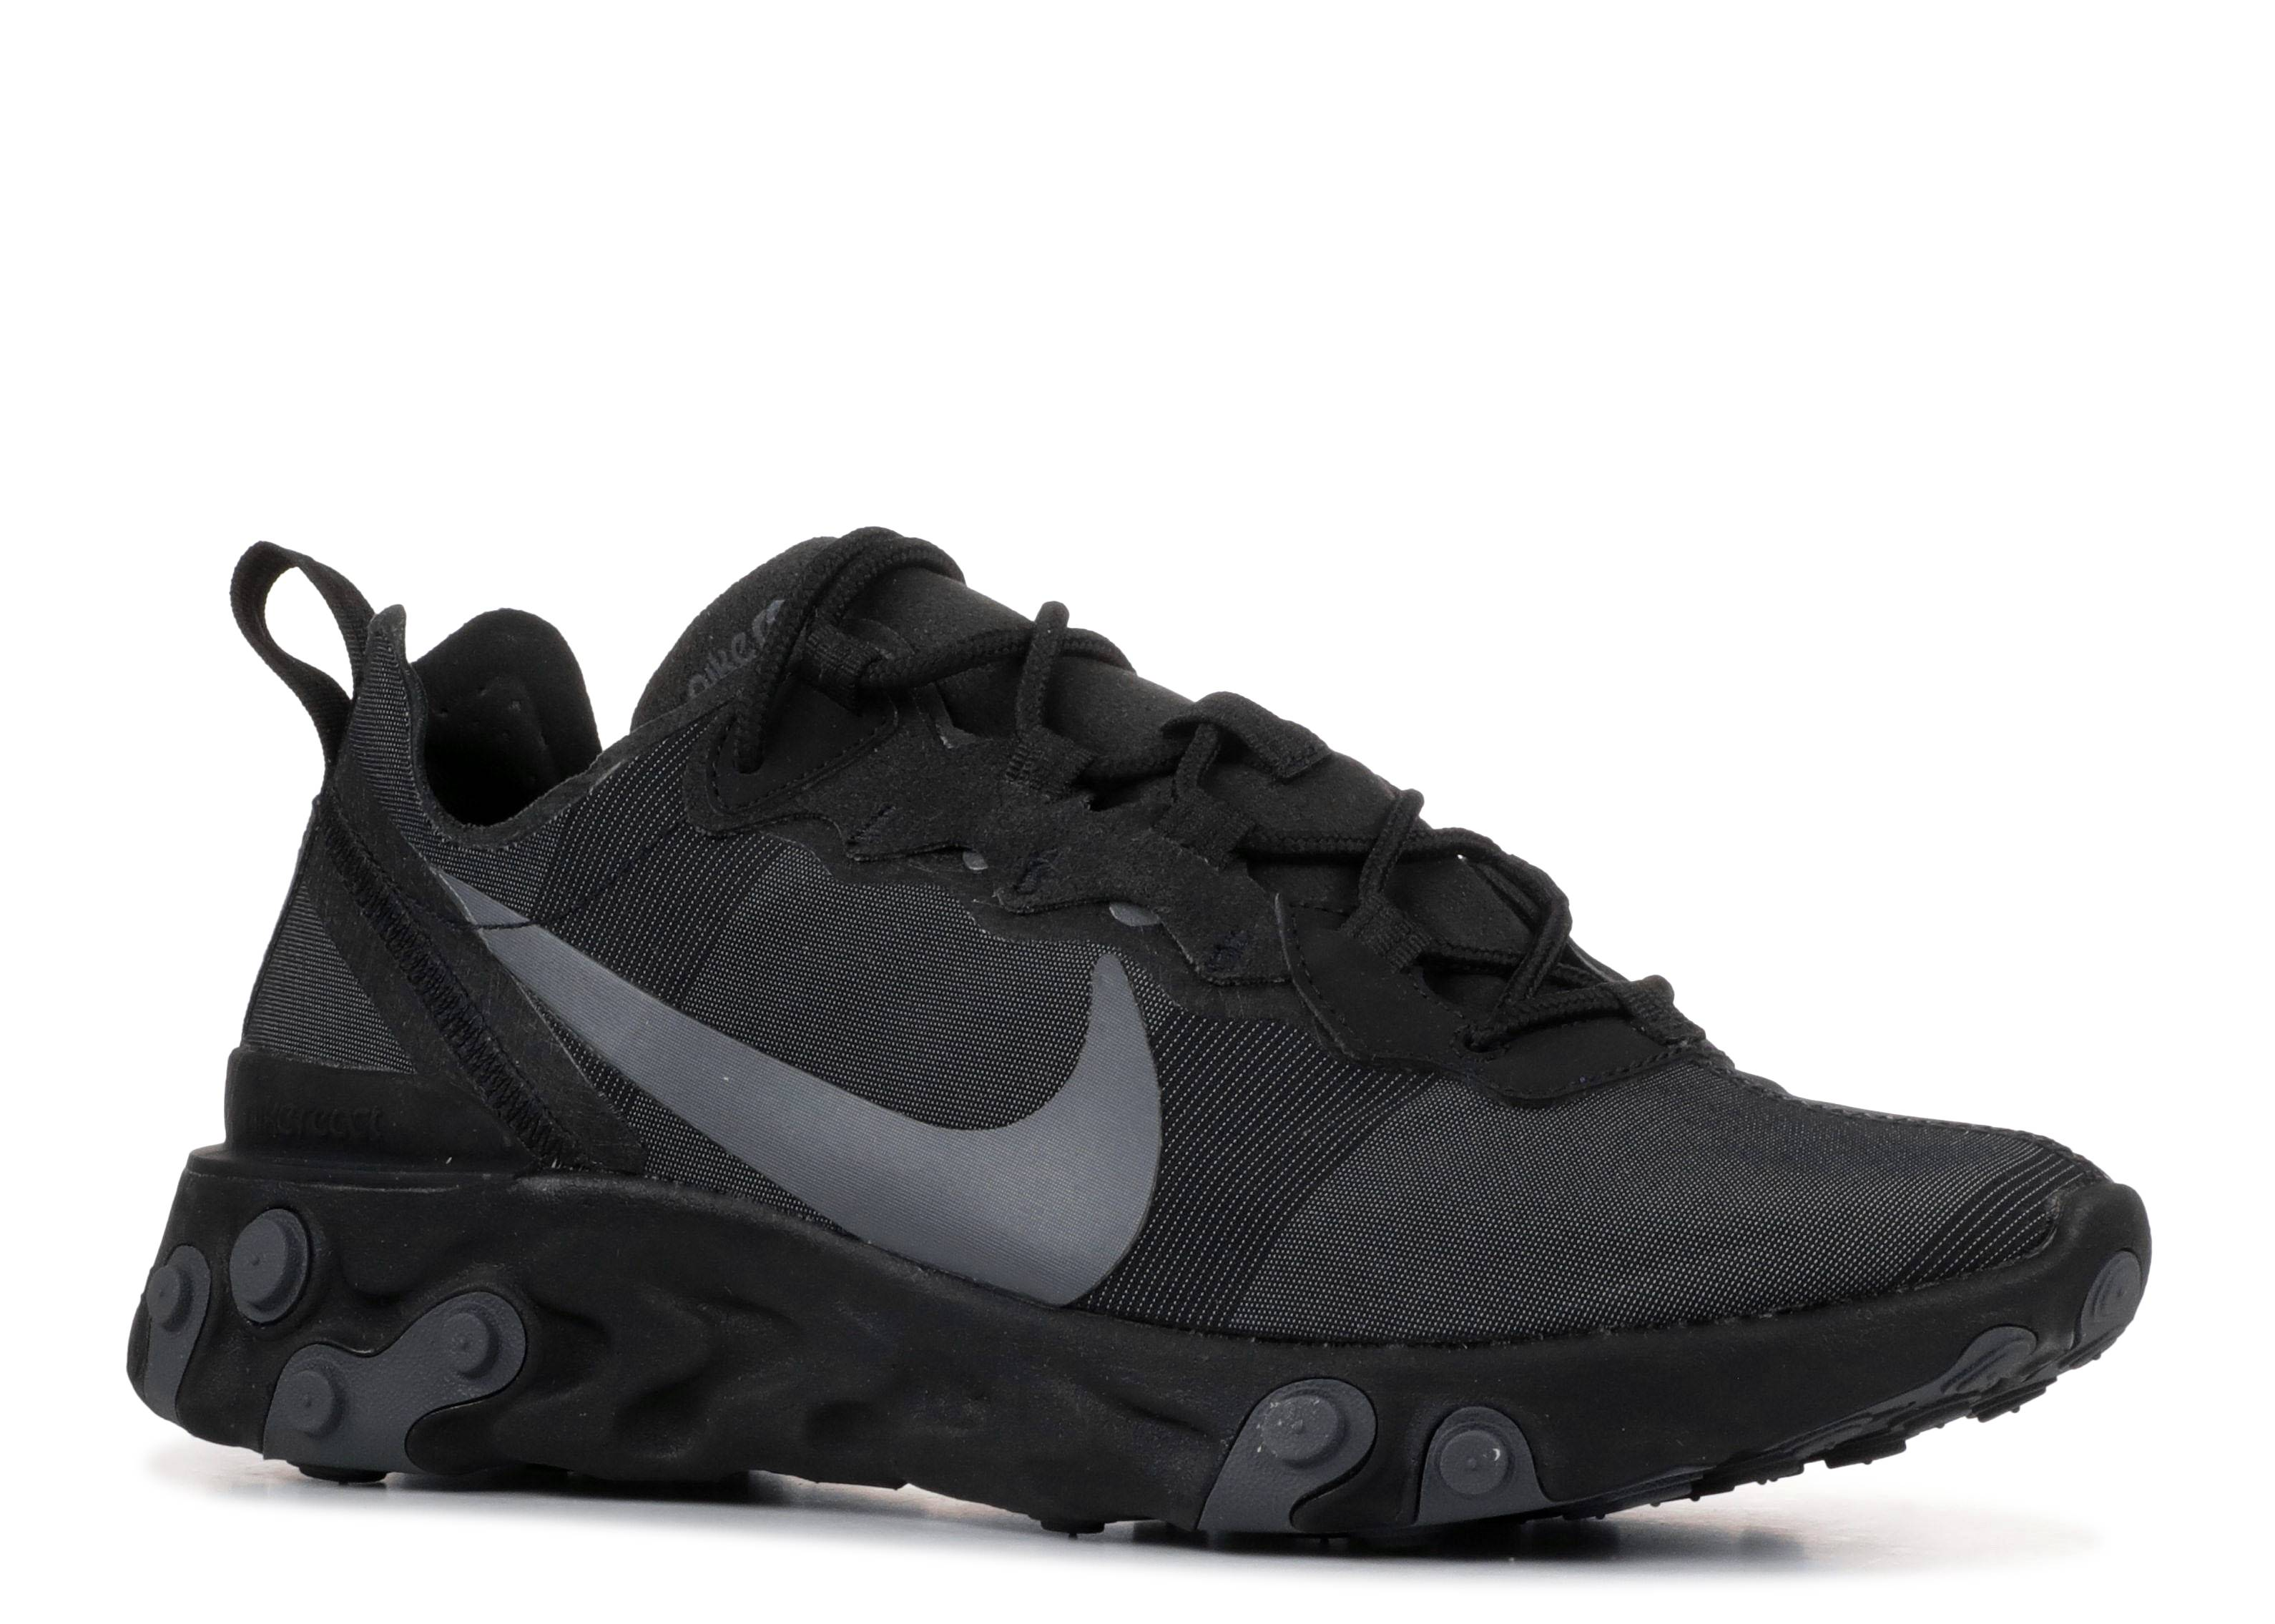 Costa Contribución Sorprendido  React Element 55 'Triple Black' - Nike - BQ6166 008 - black/black-dark grey  | Flight Club